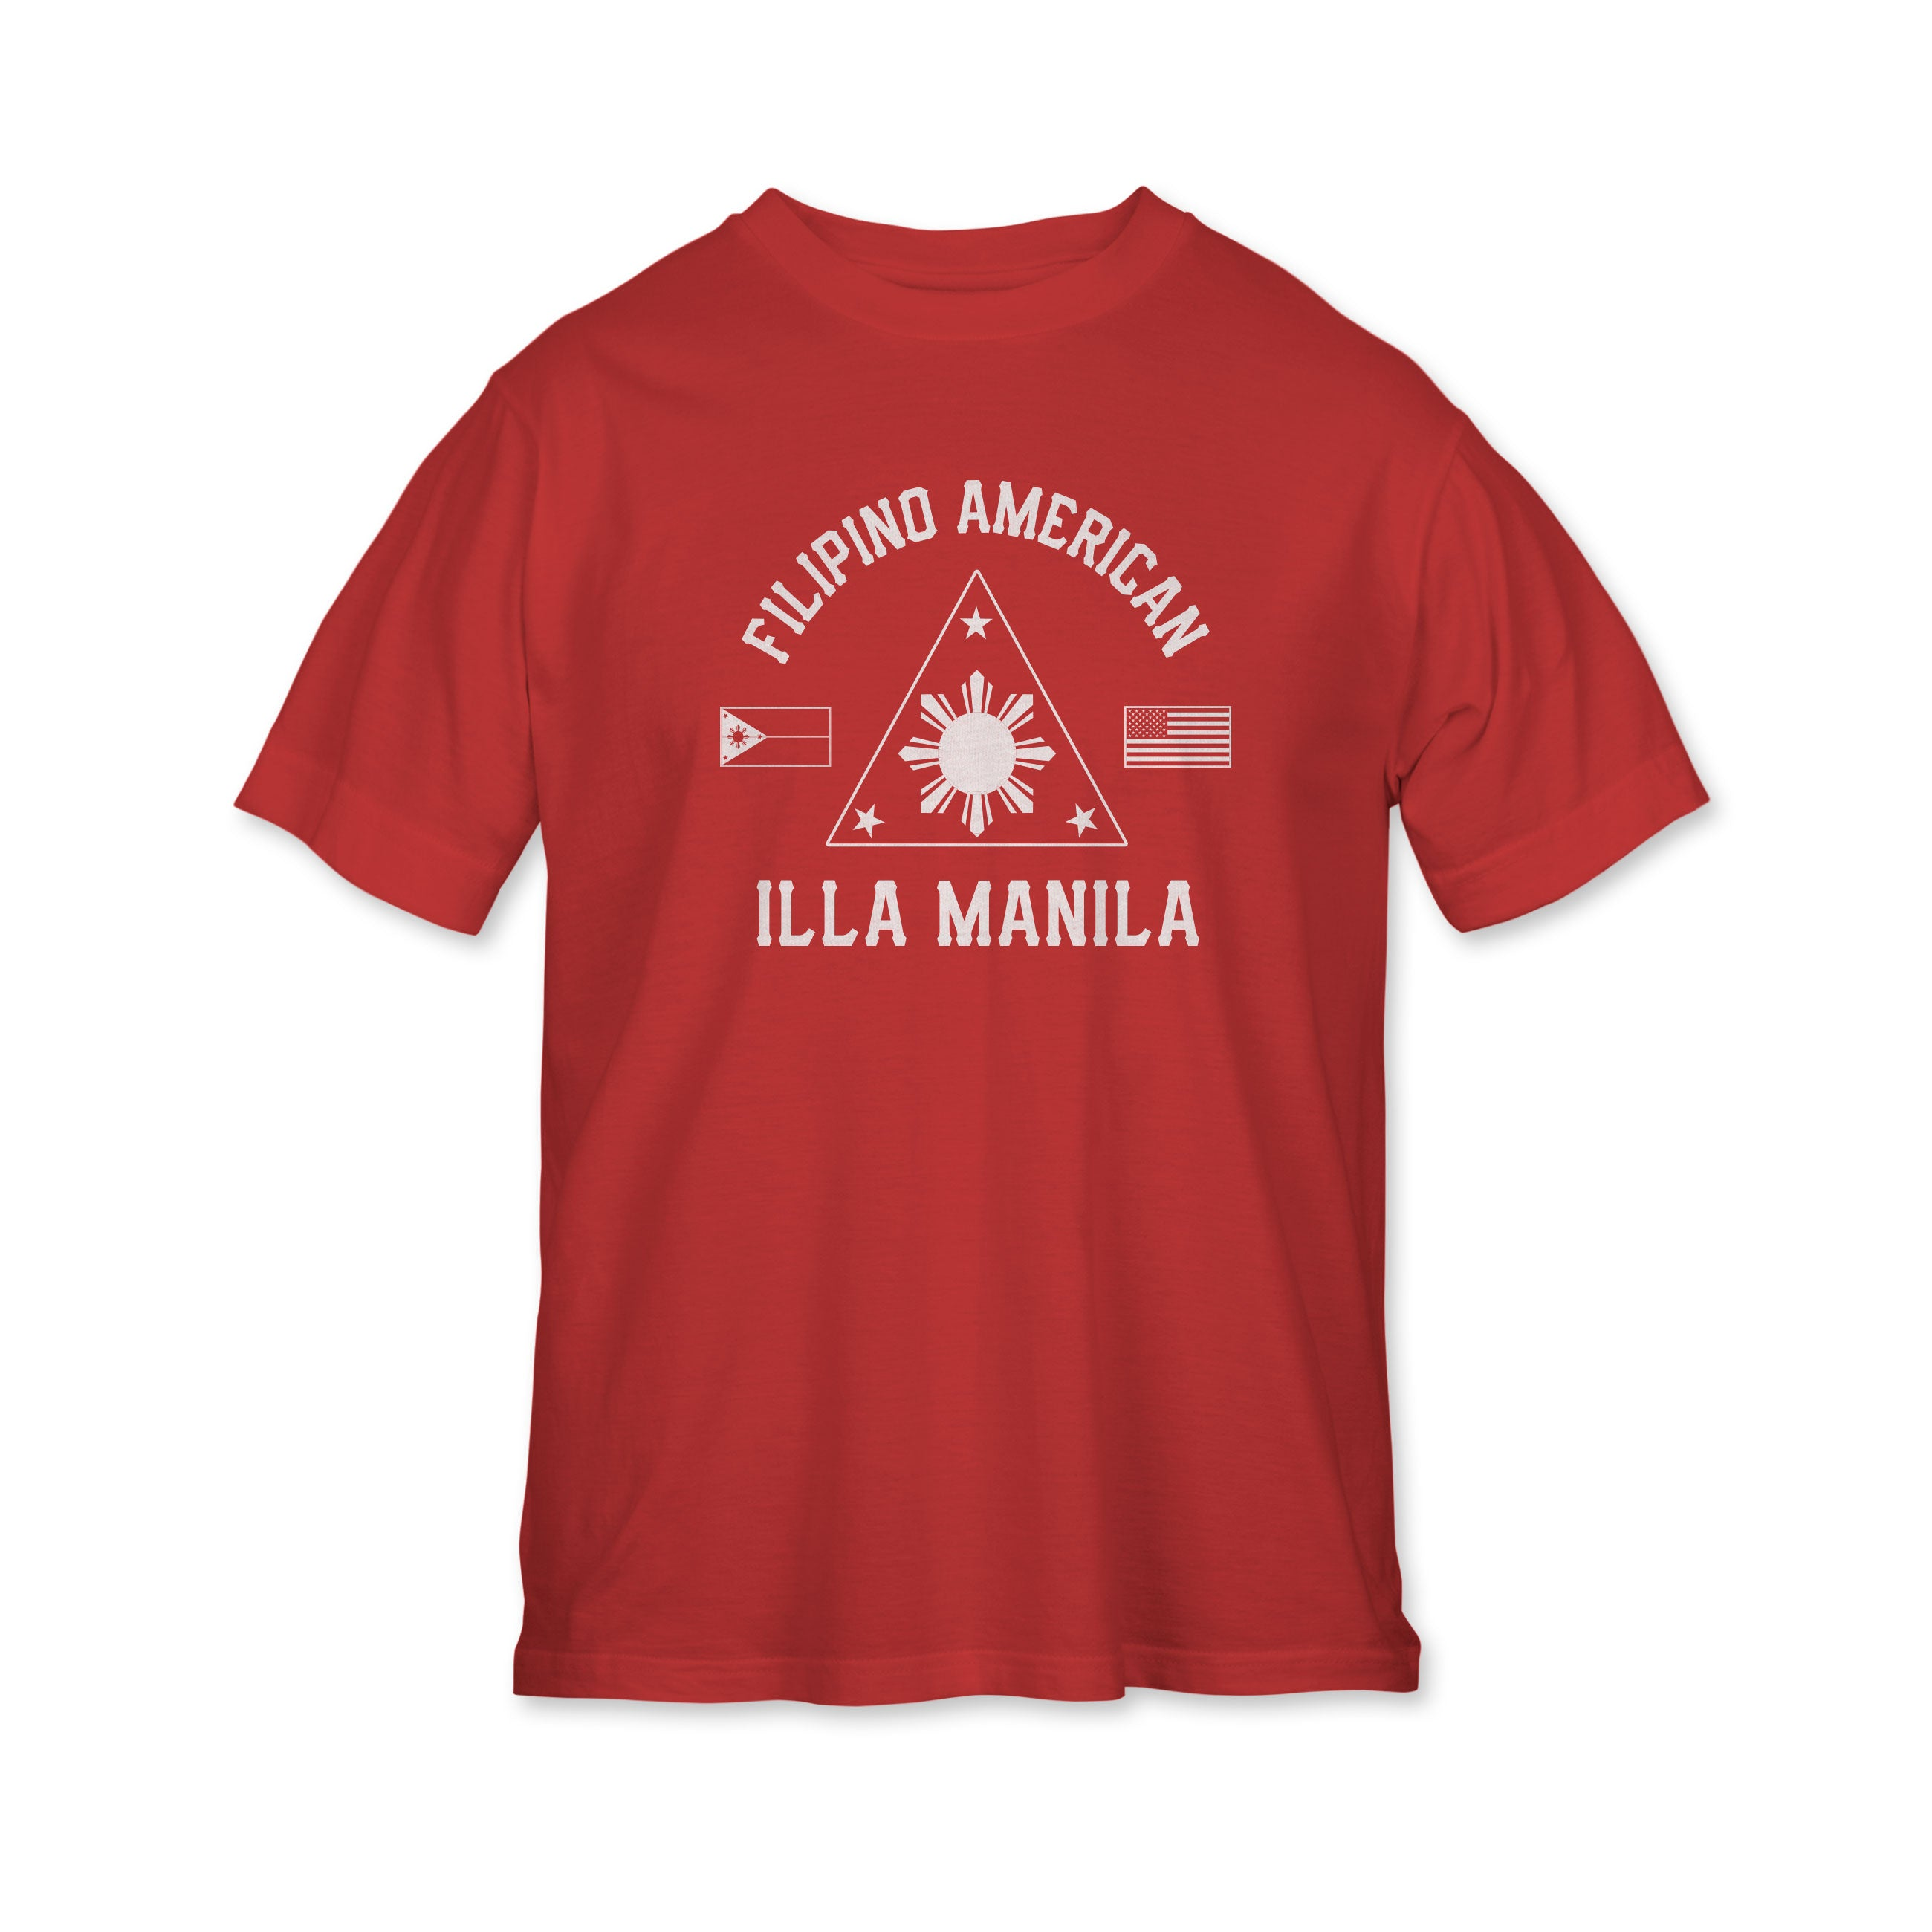 illa manila shirt filipino american fil-am